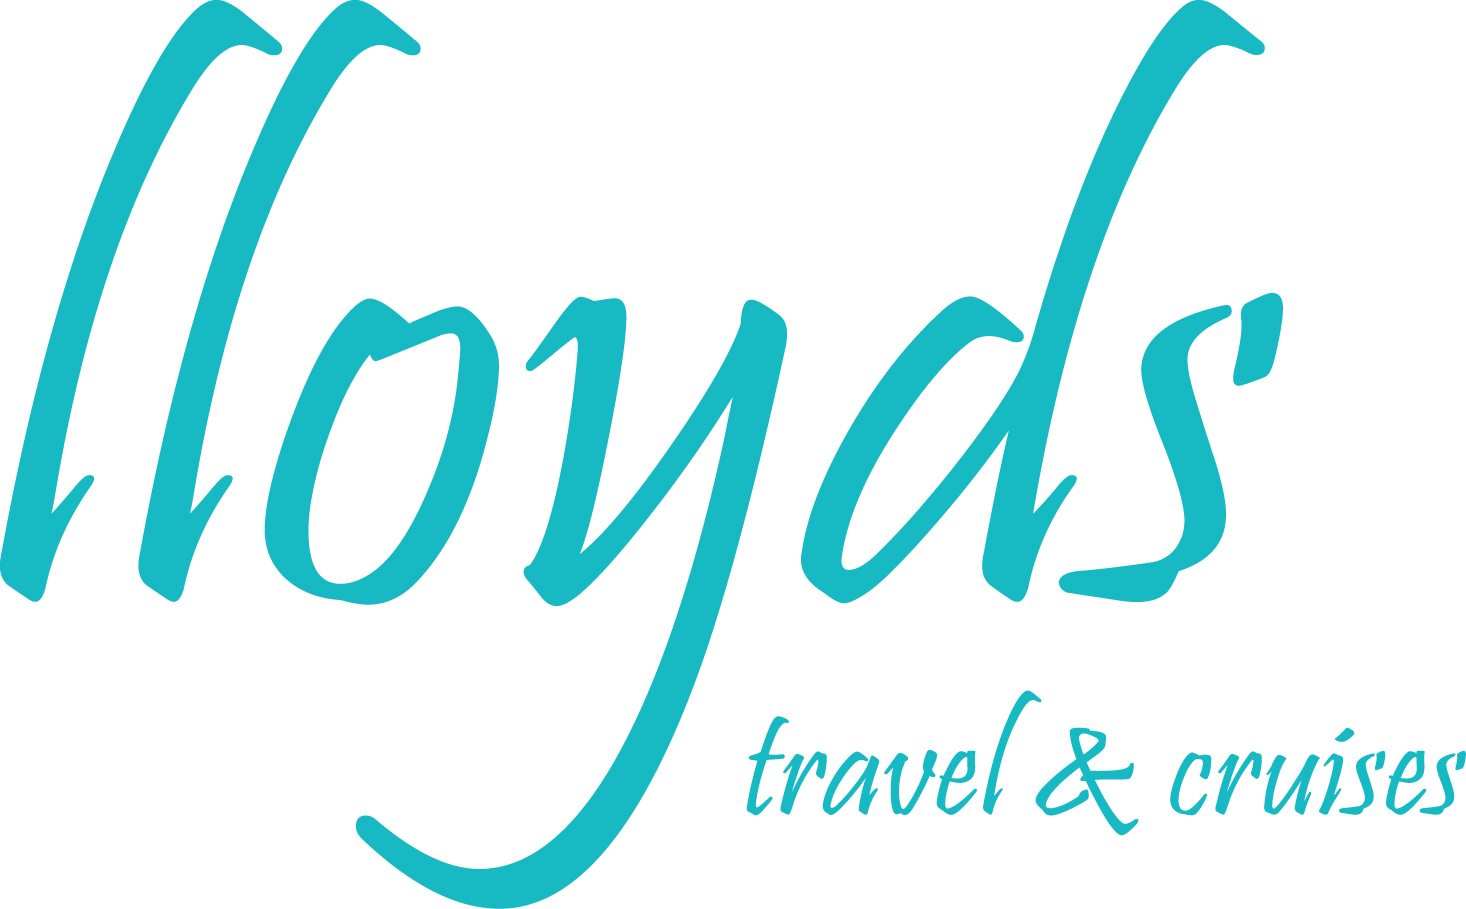 Lloyds Travel & Cruises Ltd.